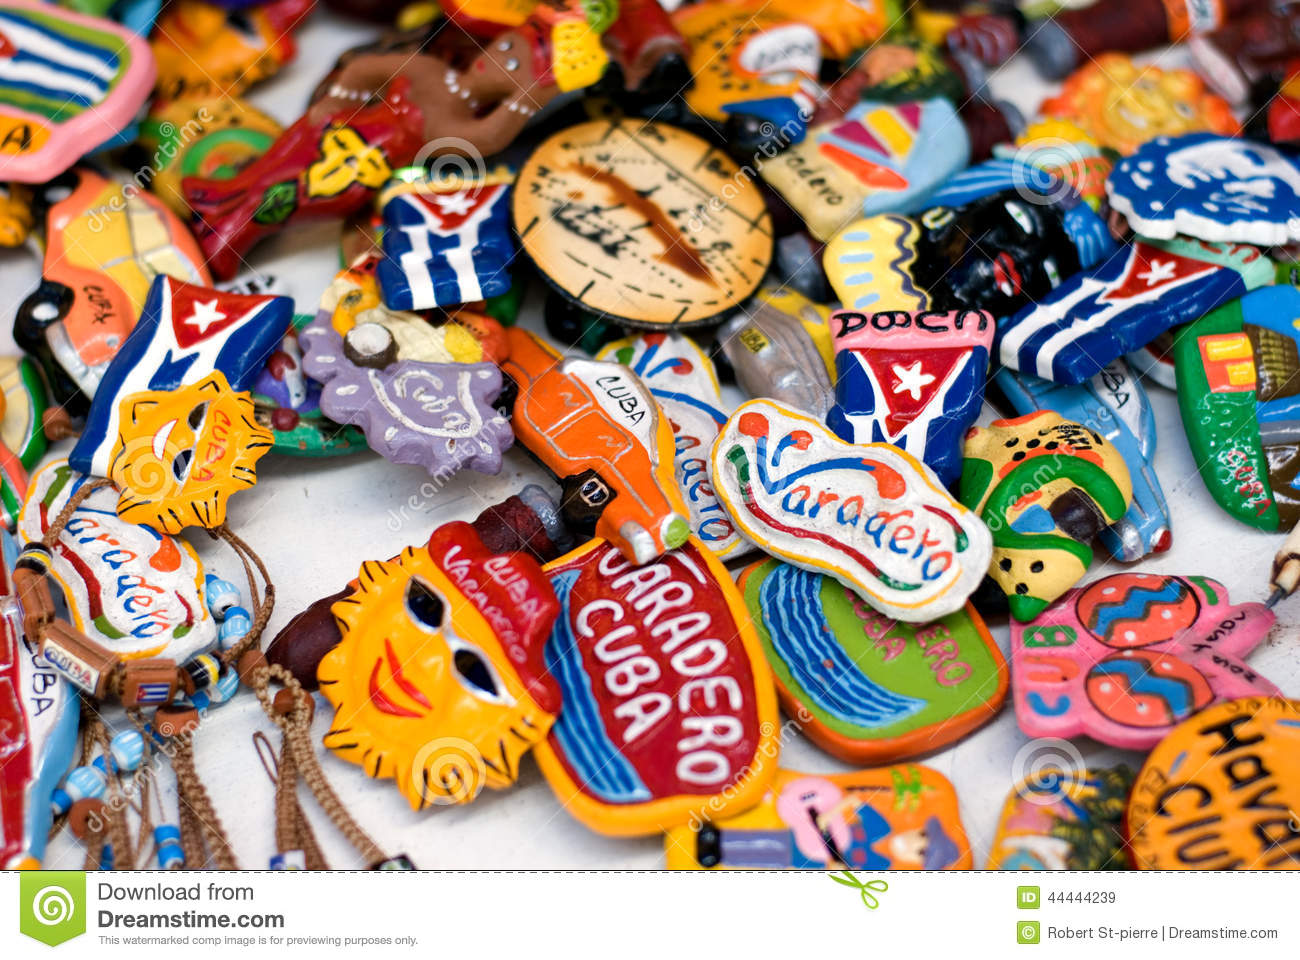 Travel Souvenirs From Cuba Stock Image. Image Of Souvenirs